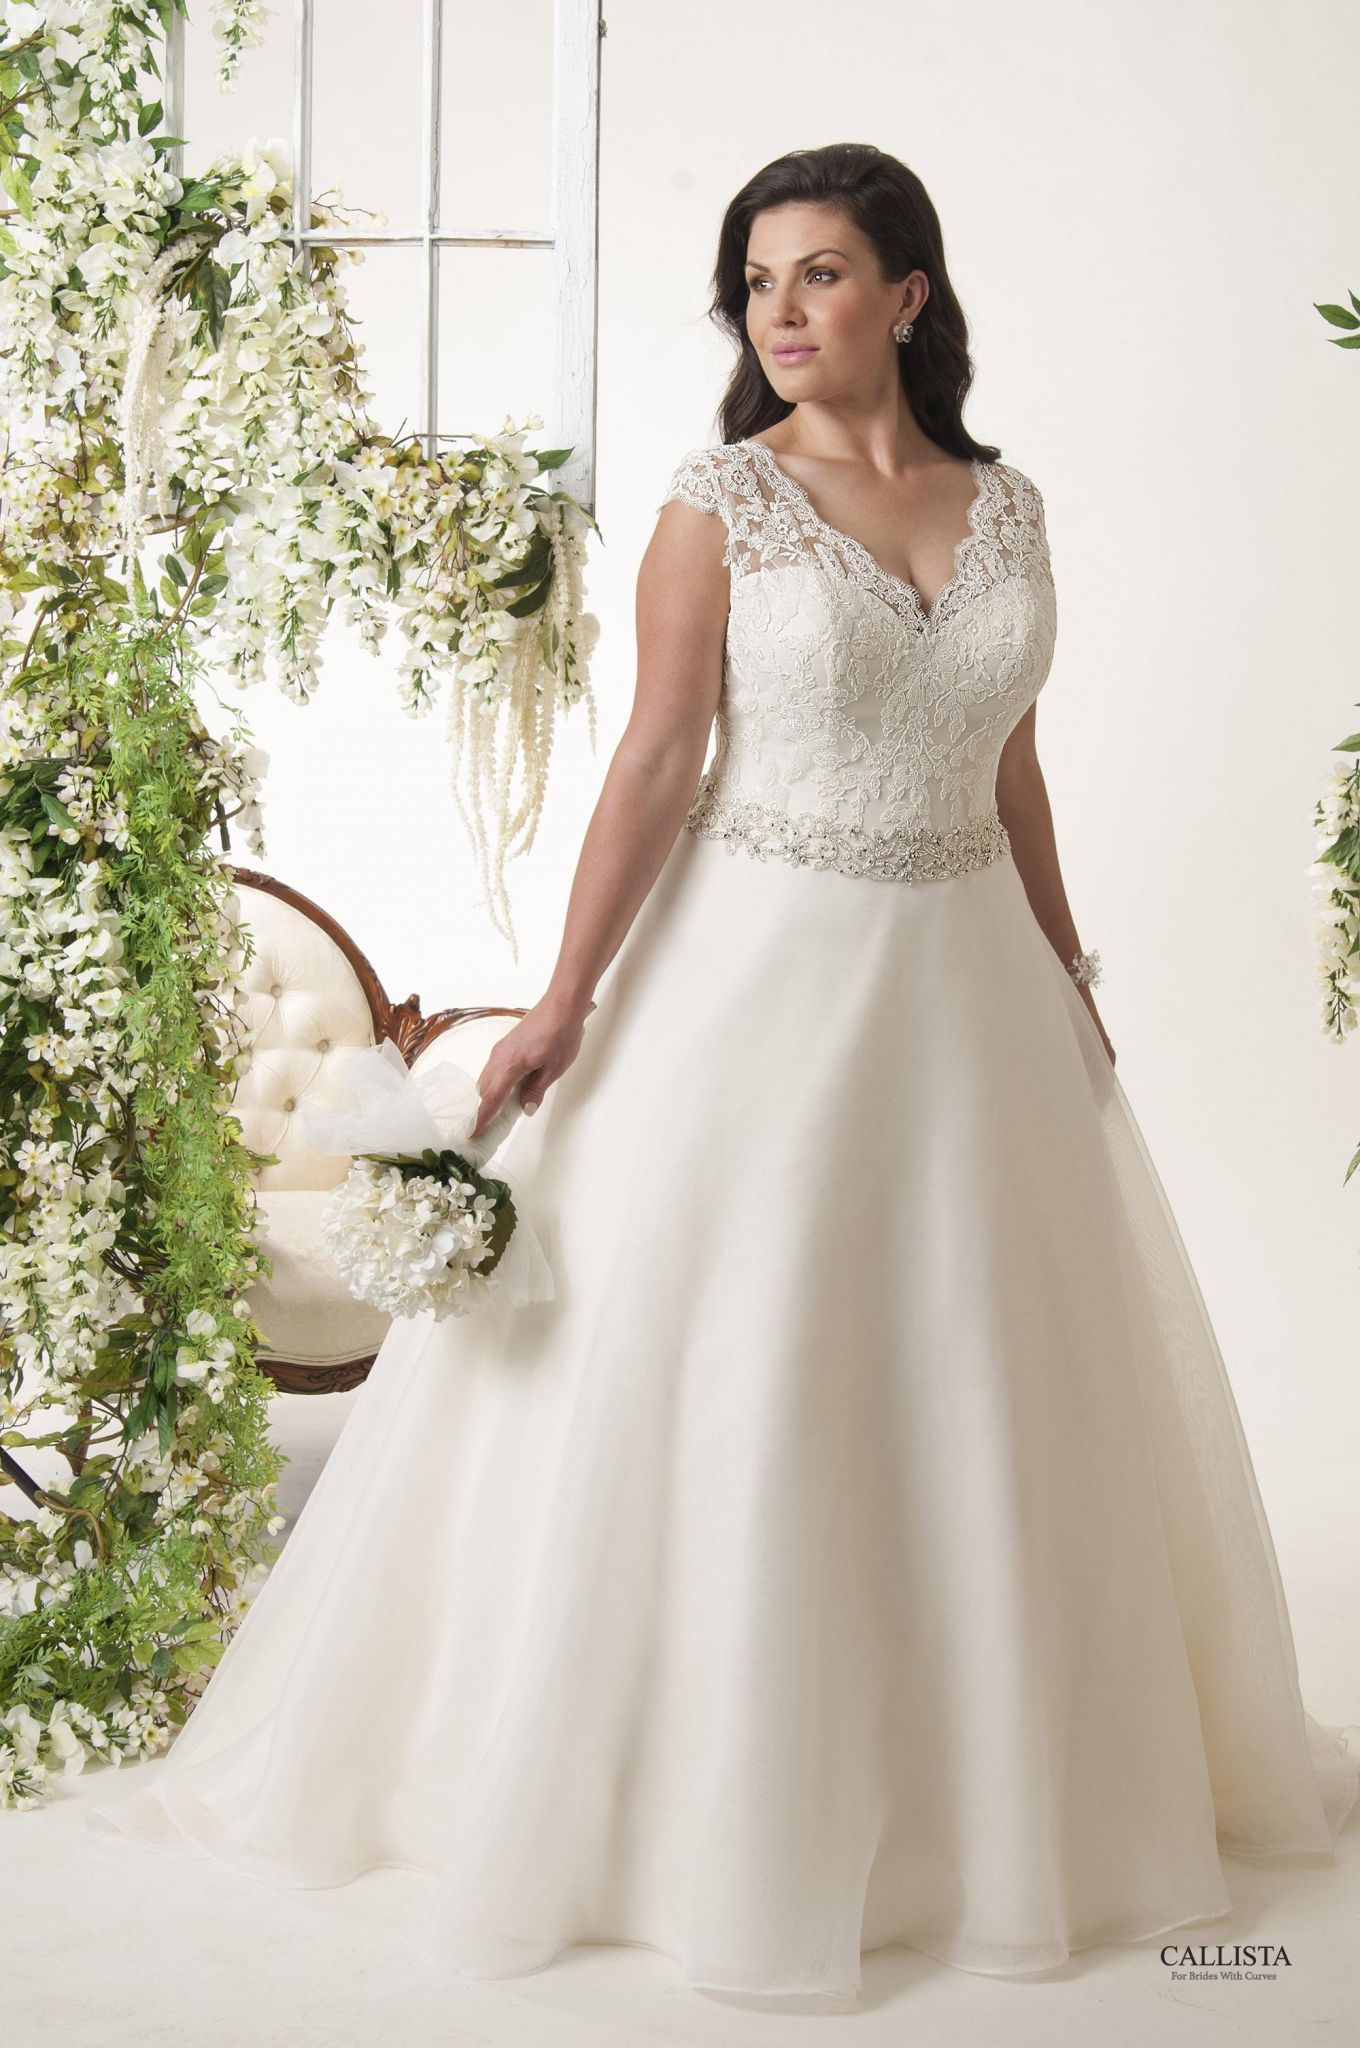 Wedding Dresses for Chubby Brides - Wedding Dresses for Plus Size ...